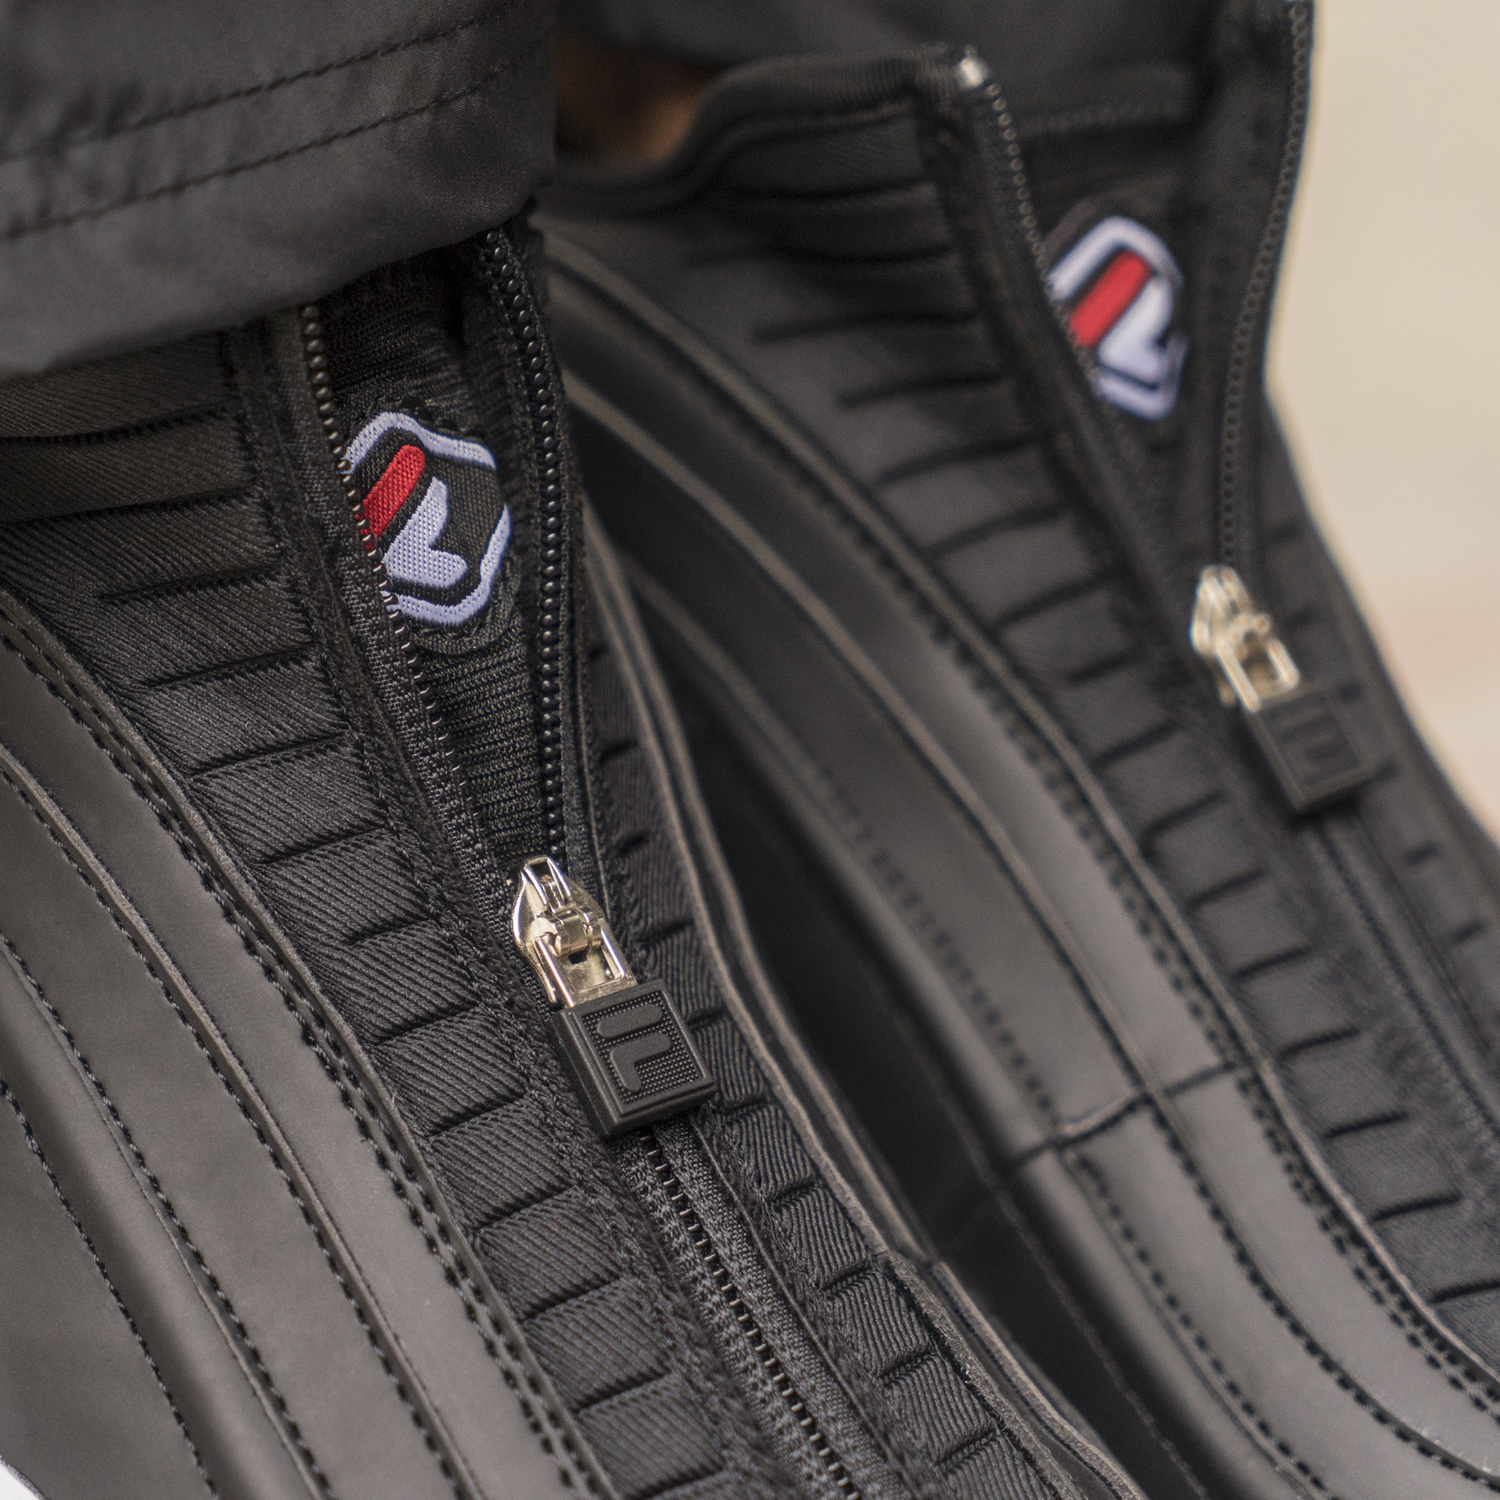 FILA Introduces Bubbles Zip and Euro